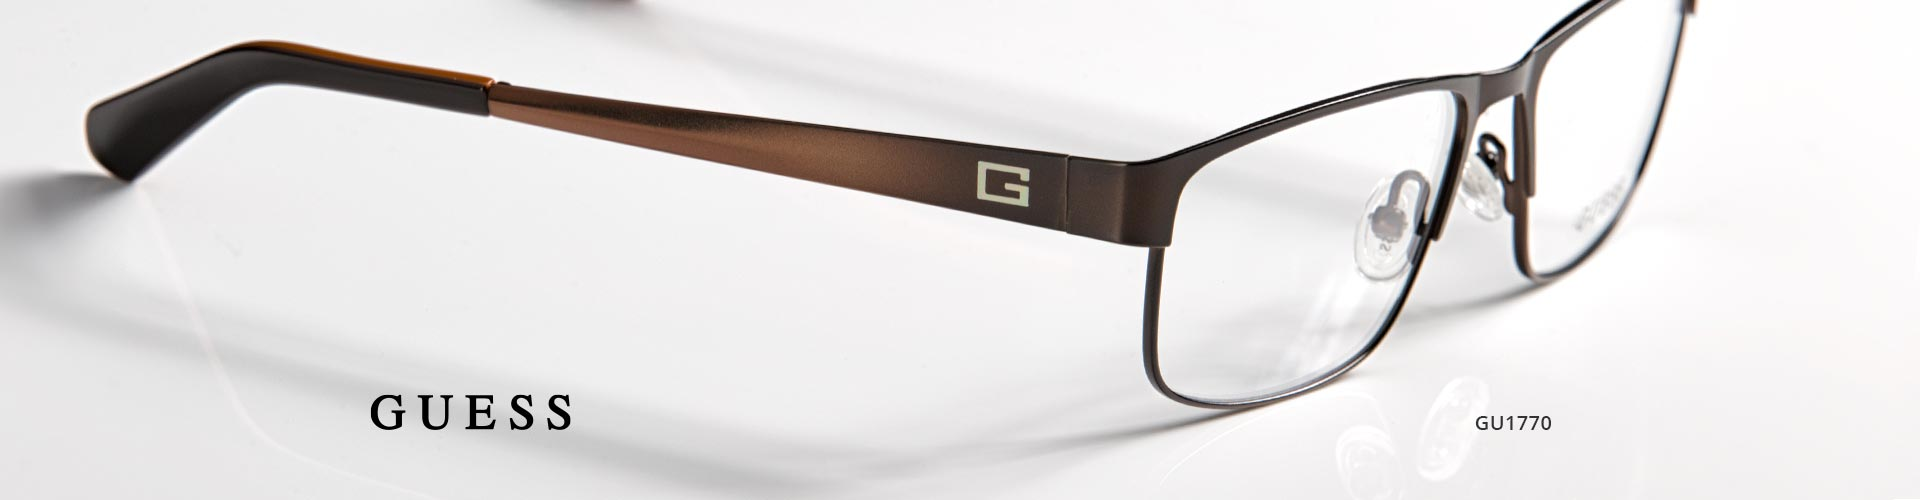 Shop Guess Eyeglasses - model GU1770 featured